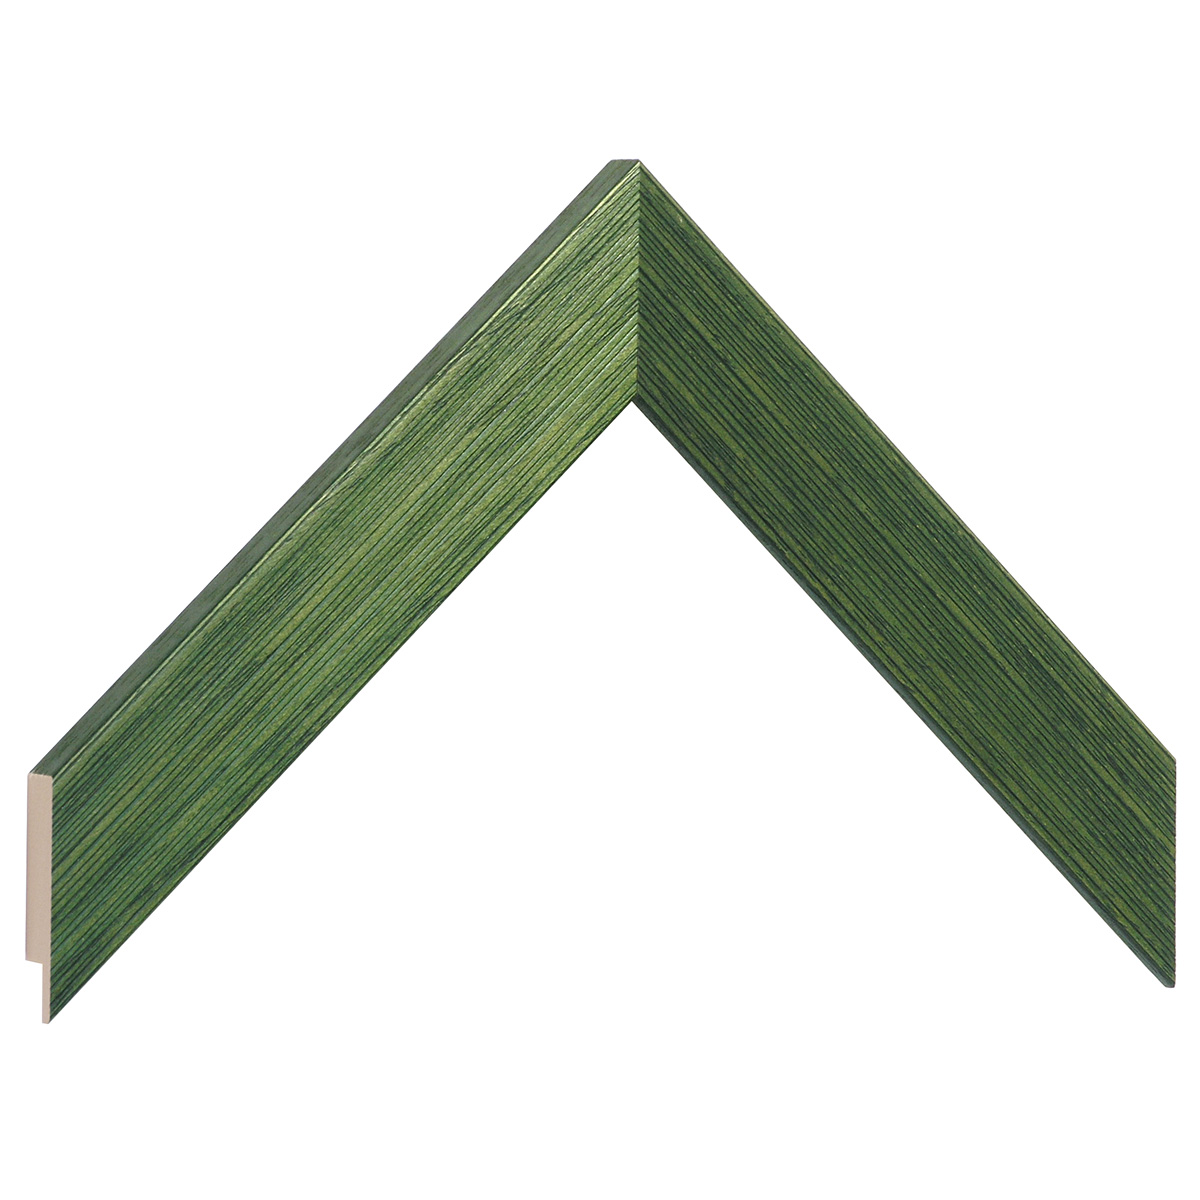 Moulding ayous, width 30mm height 14 - streaked green finish